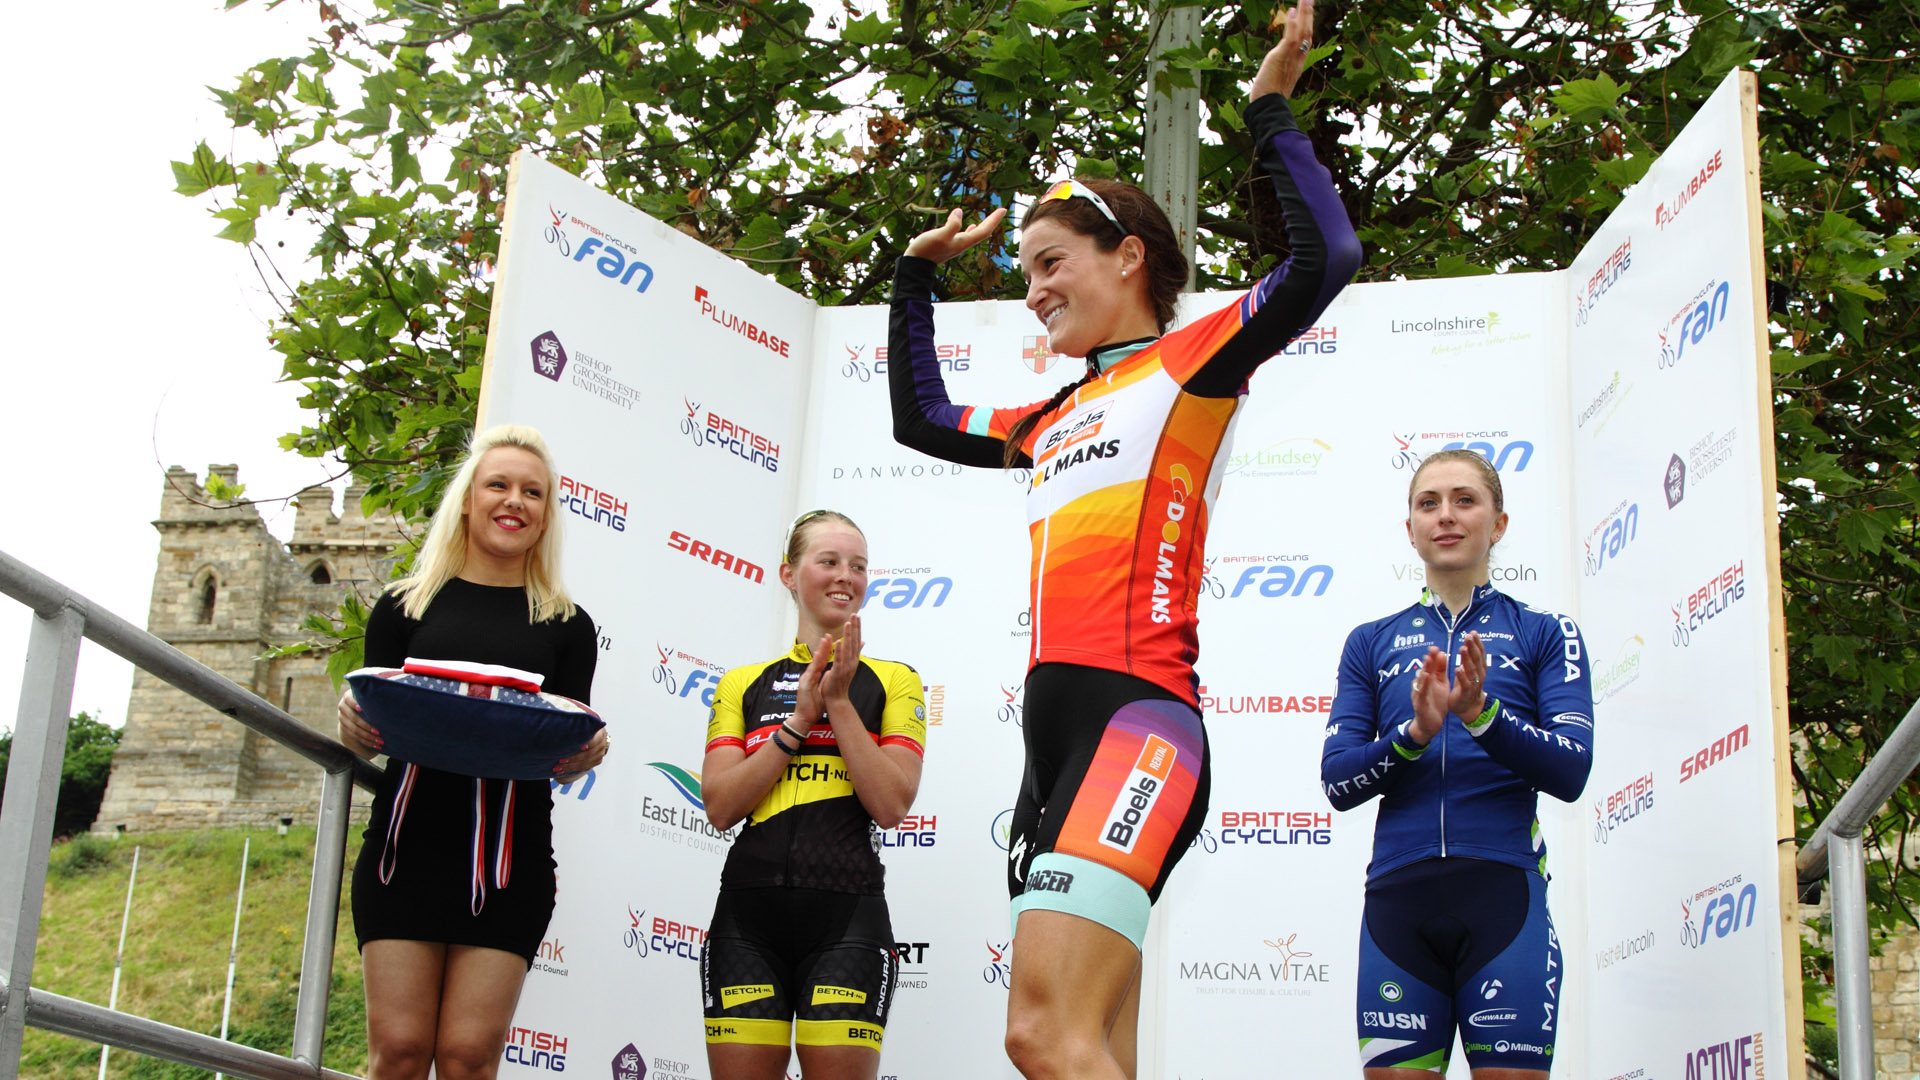 British Cycling National Road Race Championships 2015 Women's Top Ten  1 Lizzie Armitstead		02.51.14 2 Alice Barnes U23		@1.52 3 Laura Trott 4 Molly Weaver U23 5 Nikki Harris			@2.01 6 Katie Archibald U23 7 Hannah Barnes U23 8 Lucy Coldwell 9 Sharon Laws 10 Hayley Simmonds  Men Top Ten  1 Peter Kennaugh		04.27.33 2 Mark Cavendish MBE	@0.05 3 Ian Stannard			@0.39 4 Luke Rowe			 5 Scott Thwaites			@3.00 6 Adam Blythe 7 Owain Doull U23		@6.29 8 Yanto Barker 9 Steve Lampier 10 Jonathon Mould 15 Sam Lowe U23		@8.26 18 Matt Gibson U23		@8.45